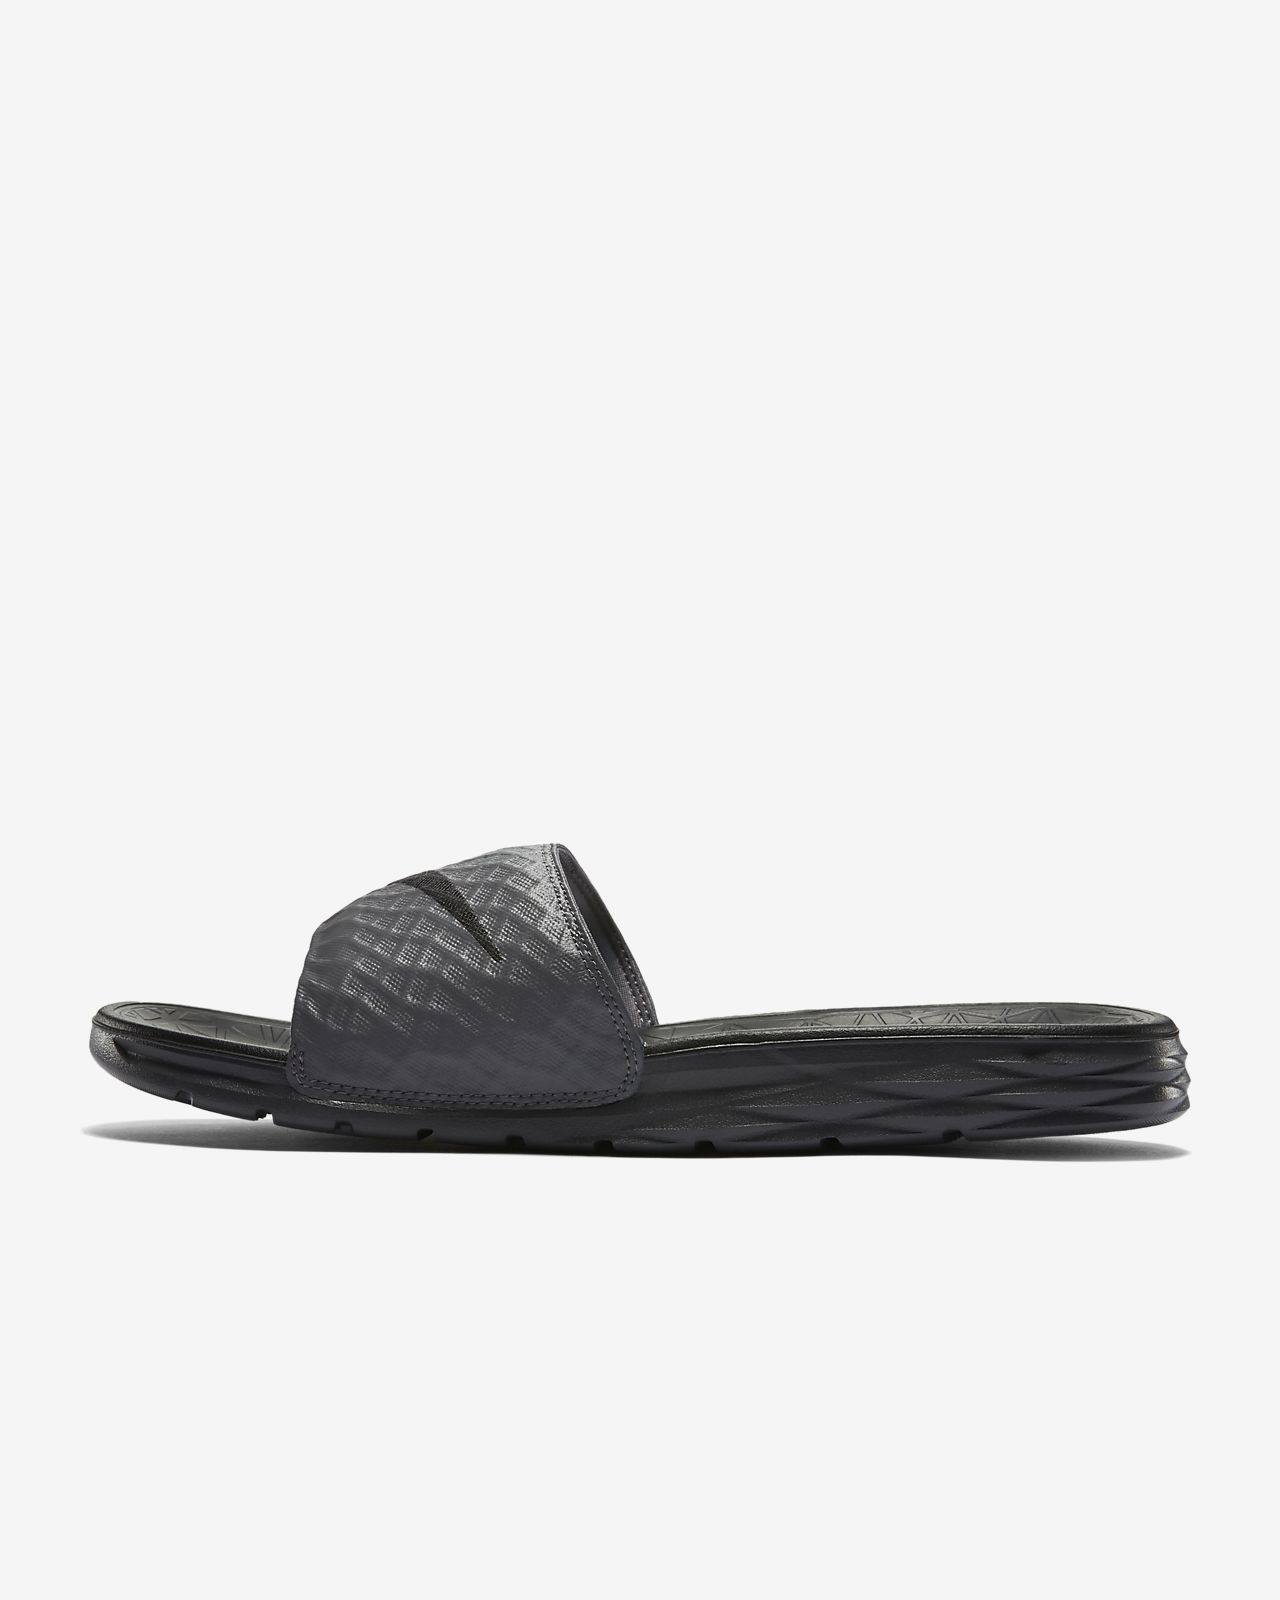 4c5585ccb868 Nike Benassi Solarsoft 2 Men s Slide. Nike.com GB